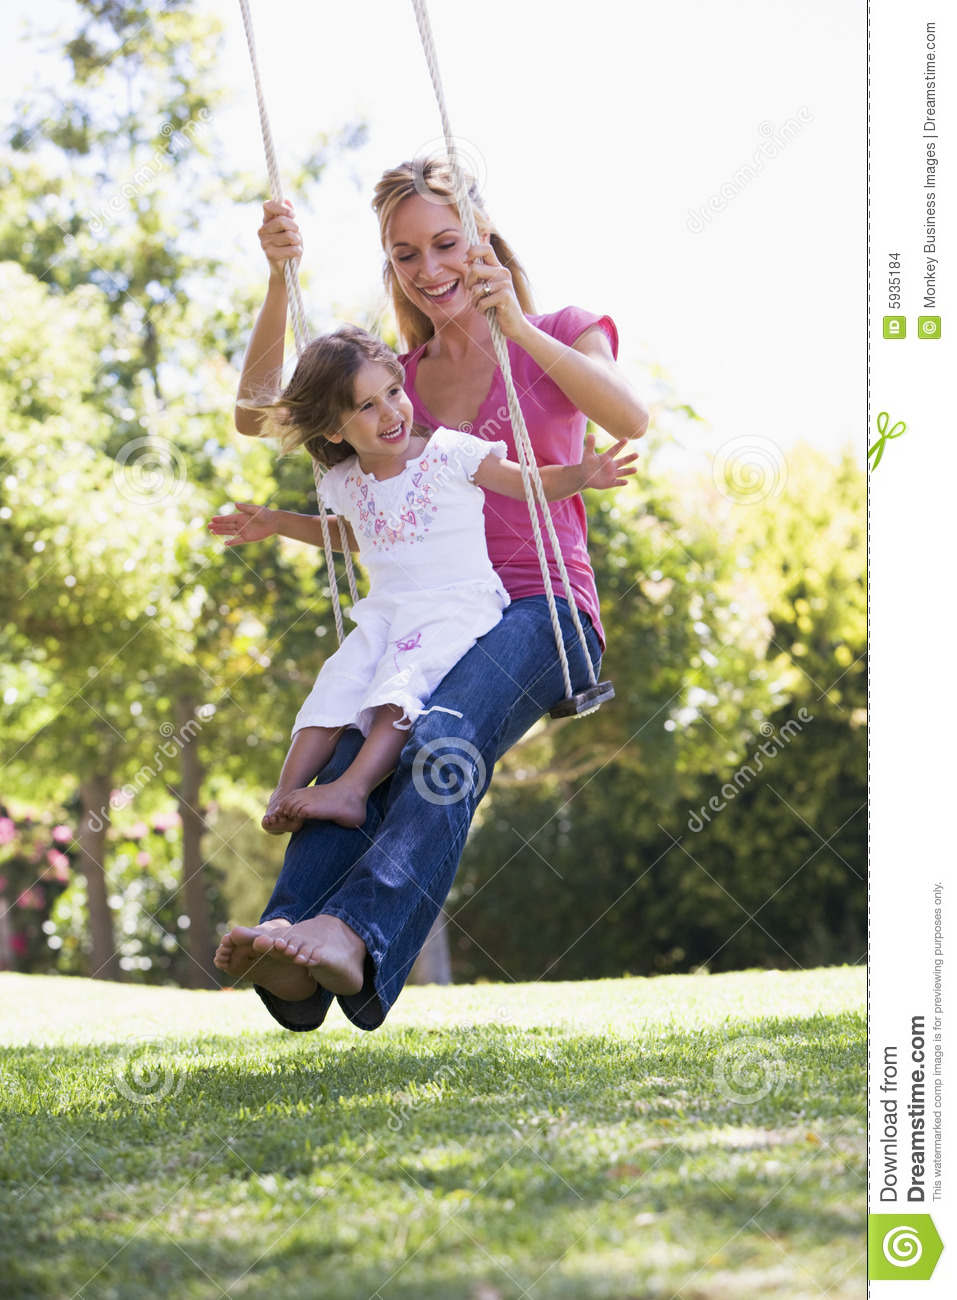 Woman and young girl outdoors on tree swing